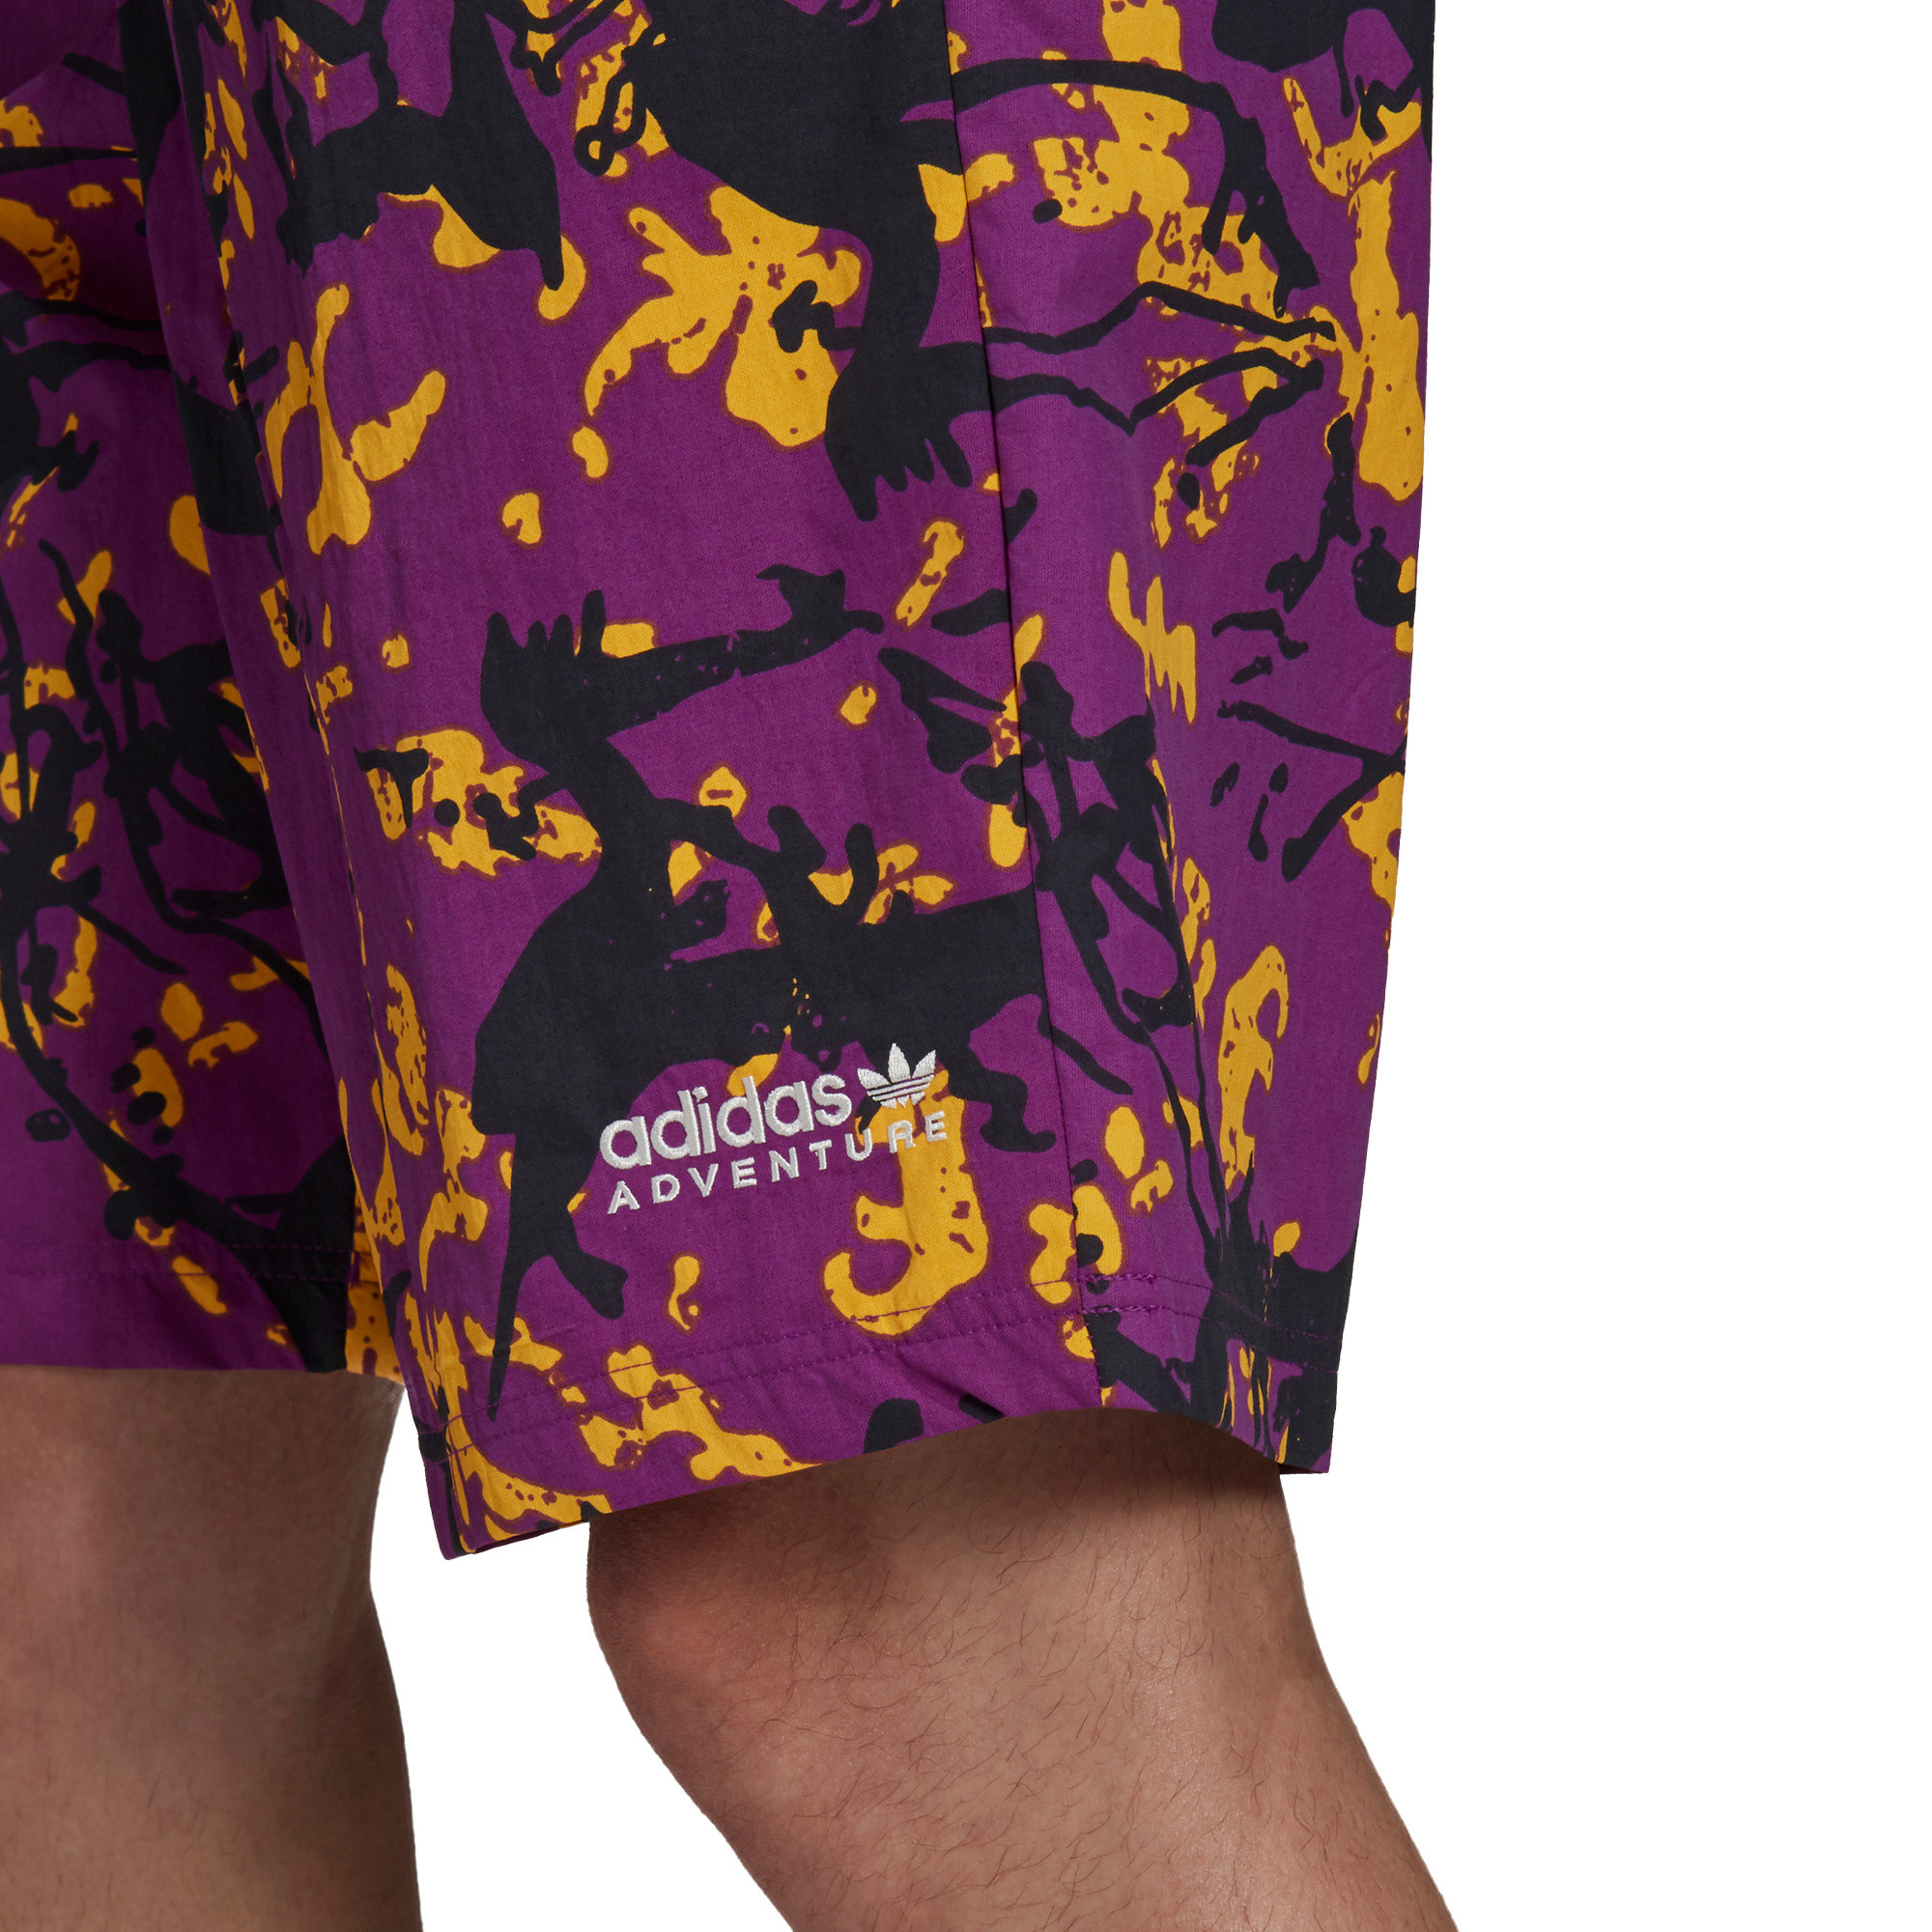 Shorts adidas Adventure Archive Printed Woven, Multicolor, large image number 2